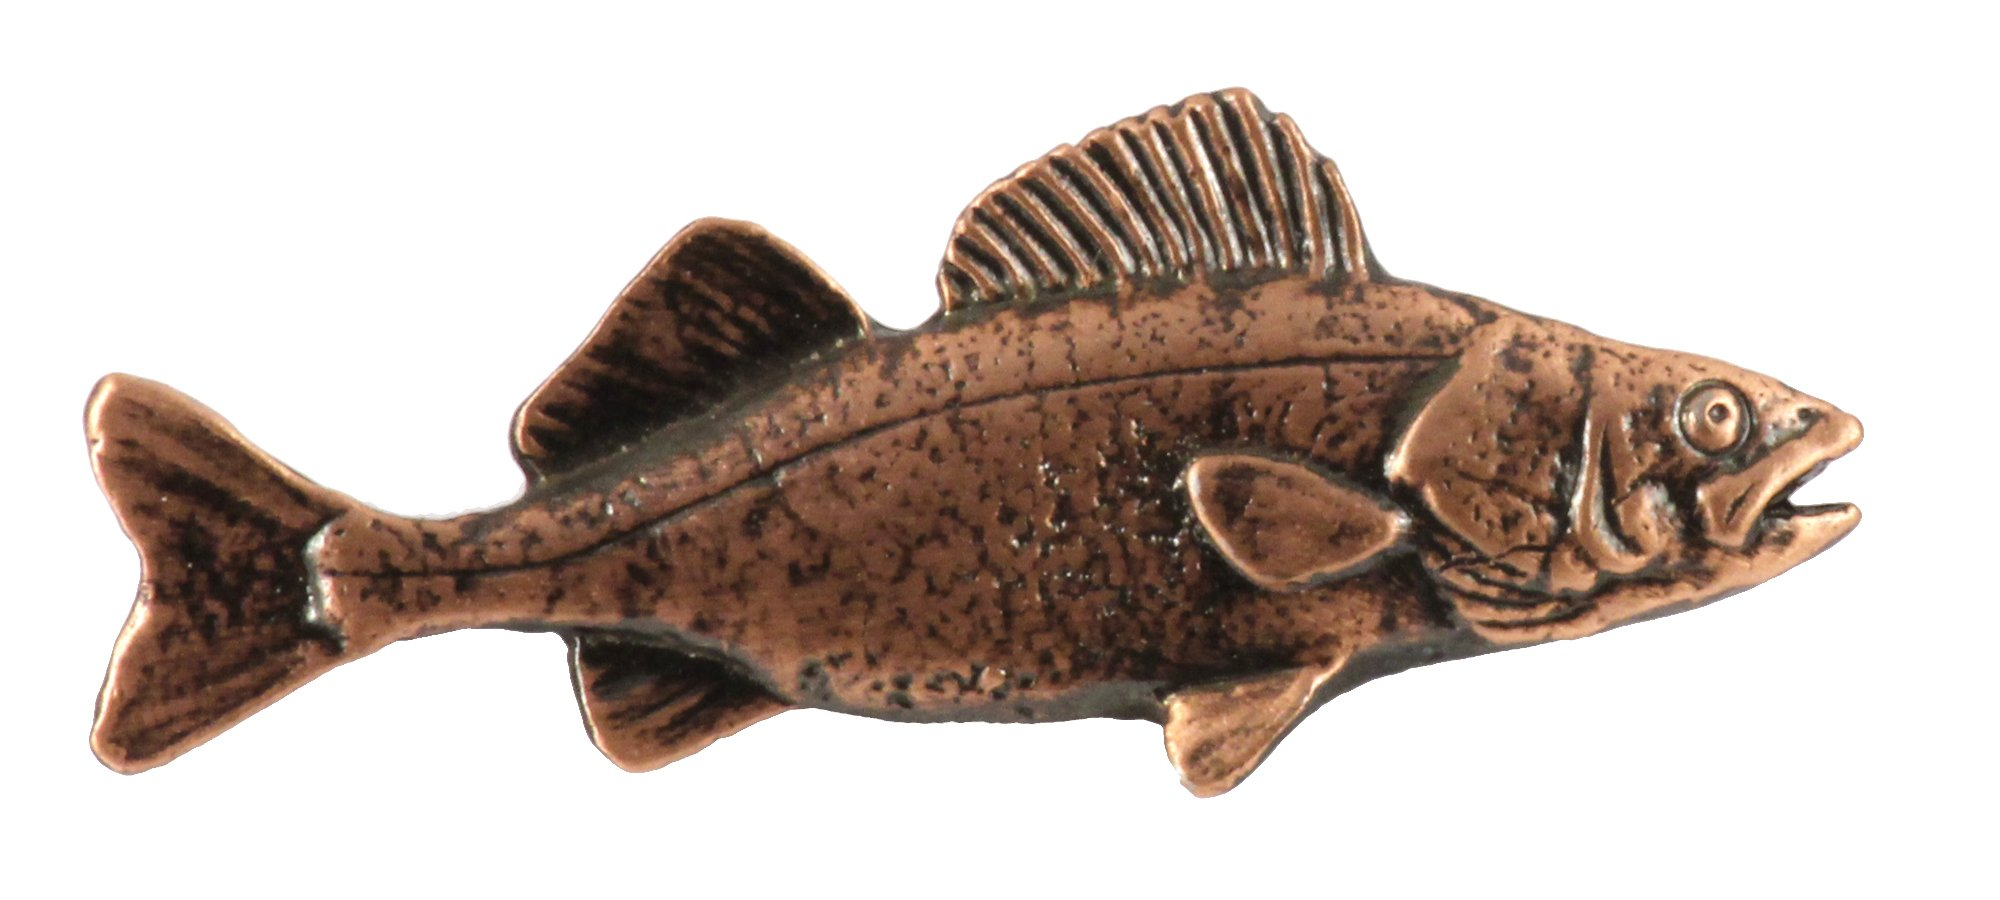 Creative Pewter Designs, Pewter Walleye, Handcrafted Freshwater Fish Lapel Pin Brooch, Copper Plated, FC075 by Creative Pewter Designs (Image #1)